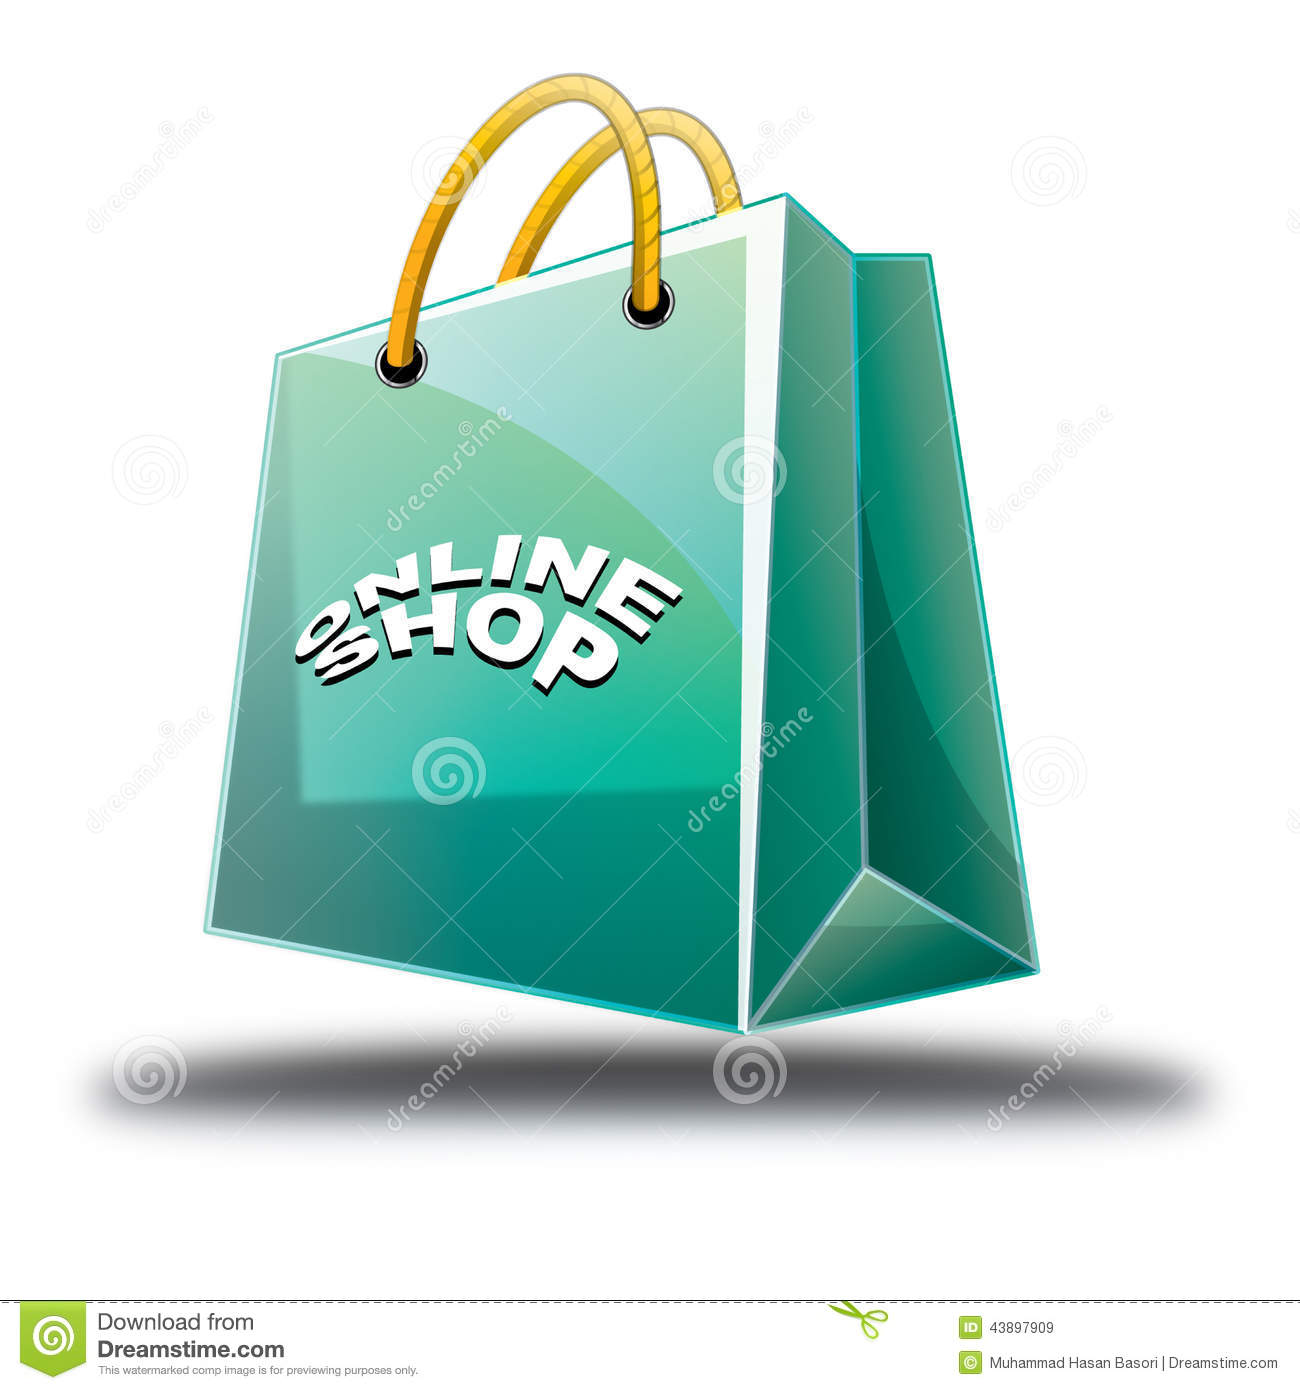 Green Shopping bag online shop icon, isolated on white background. EPS